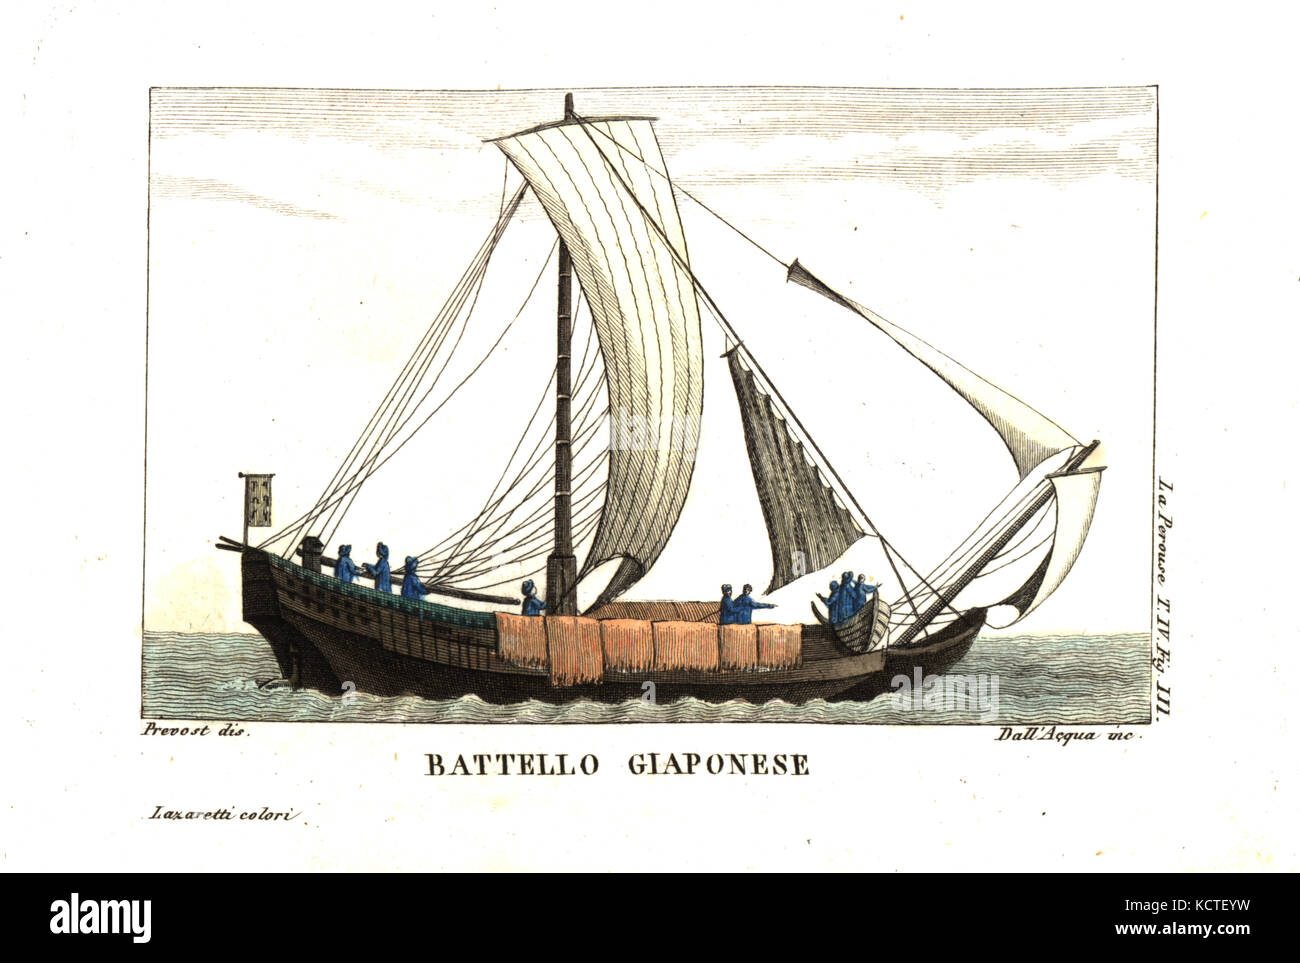 Japanese sailboat. Illustration by Jean Louis Prevost from Jean Francois Laperouse's Voyage. Copperplate engraving - Stock Image